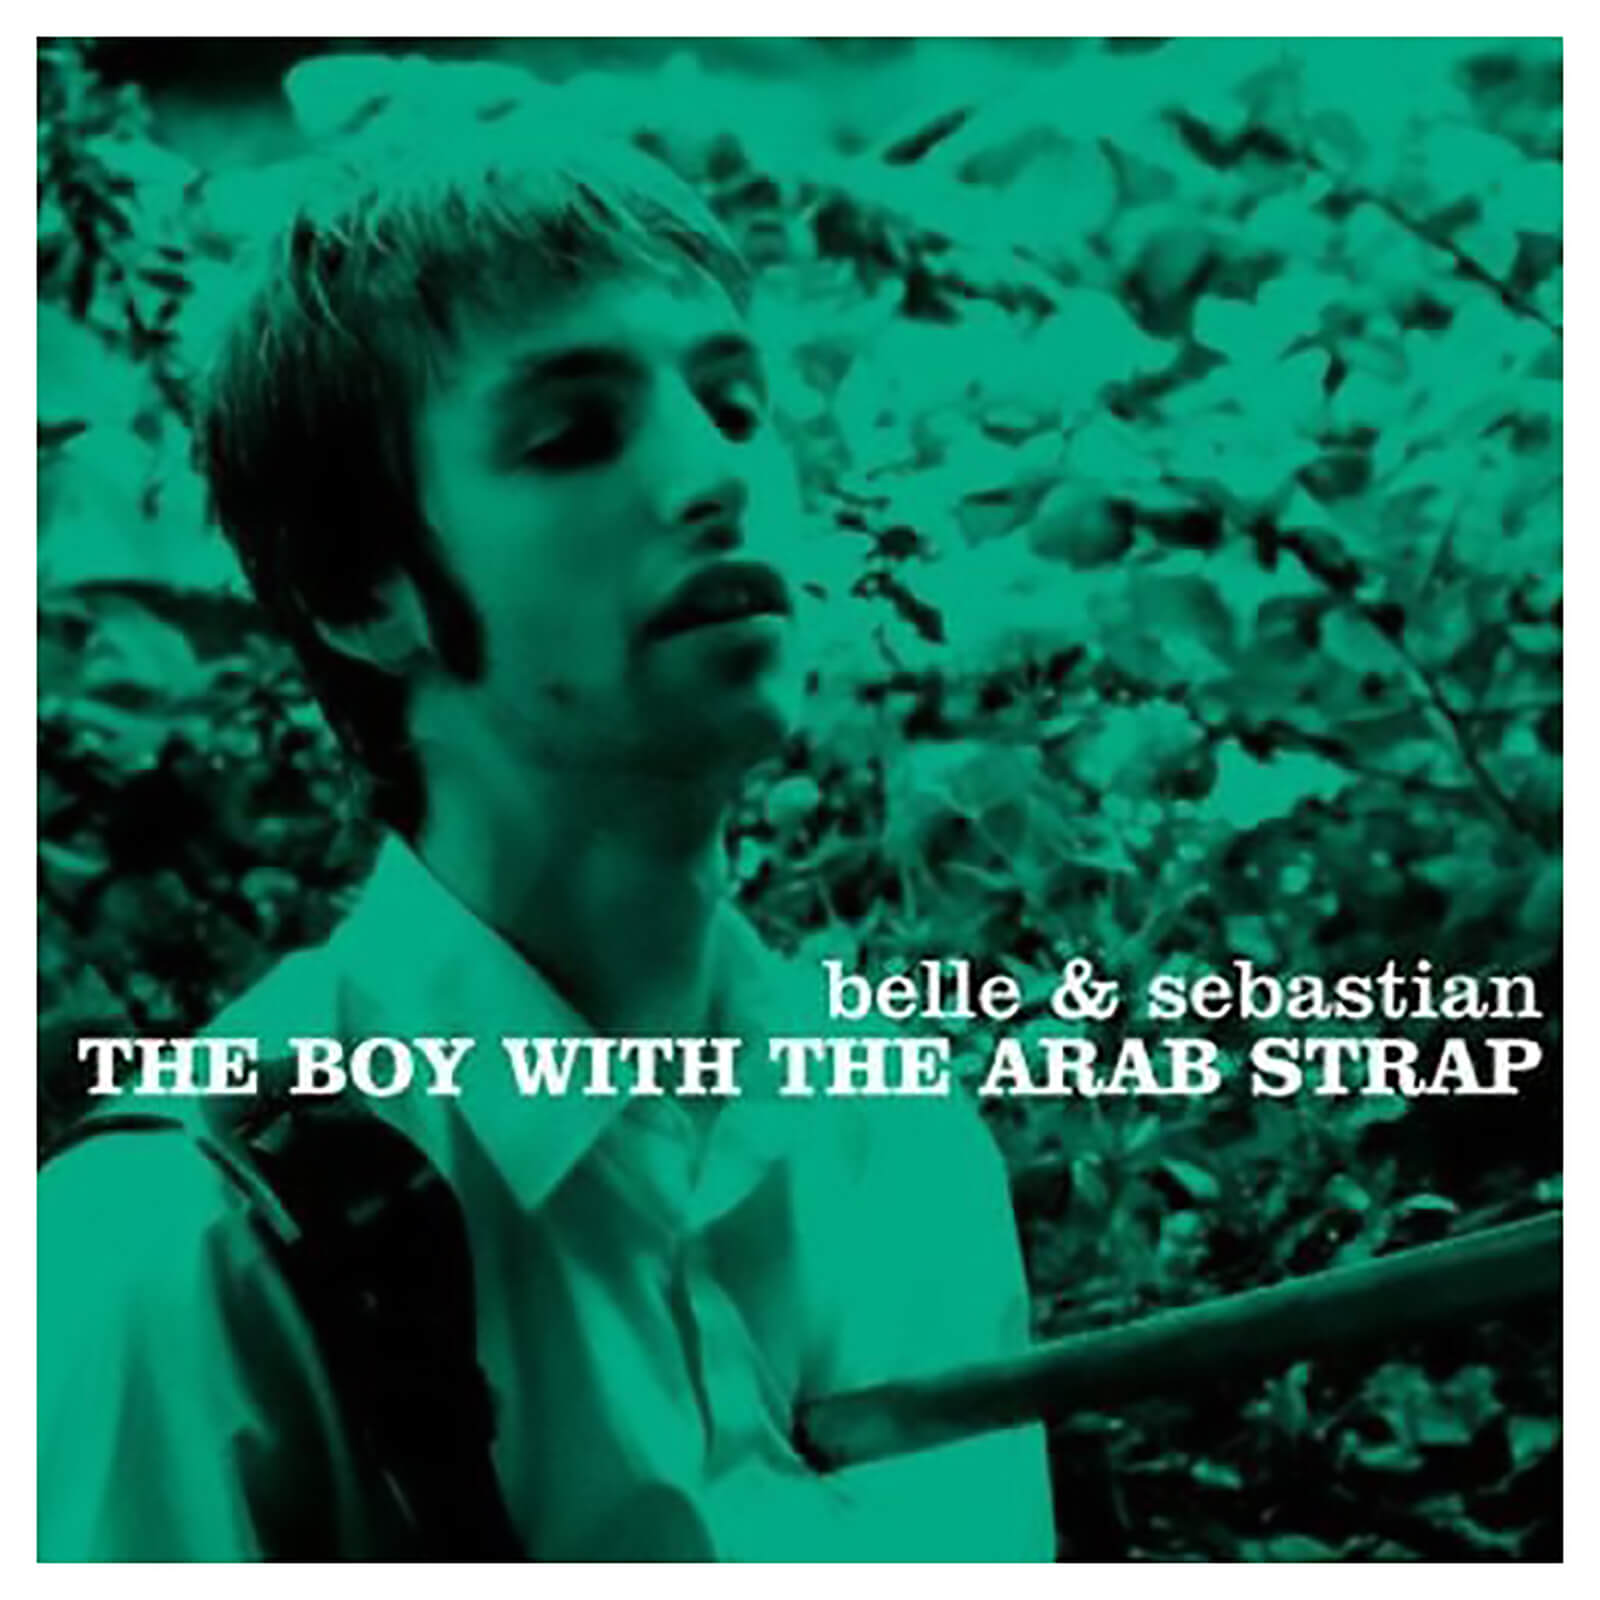 Belle & Sebastian - Boy With The Arab Strap - Vinyl